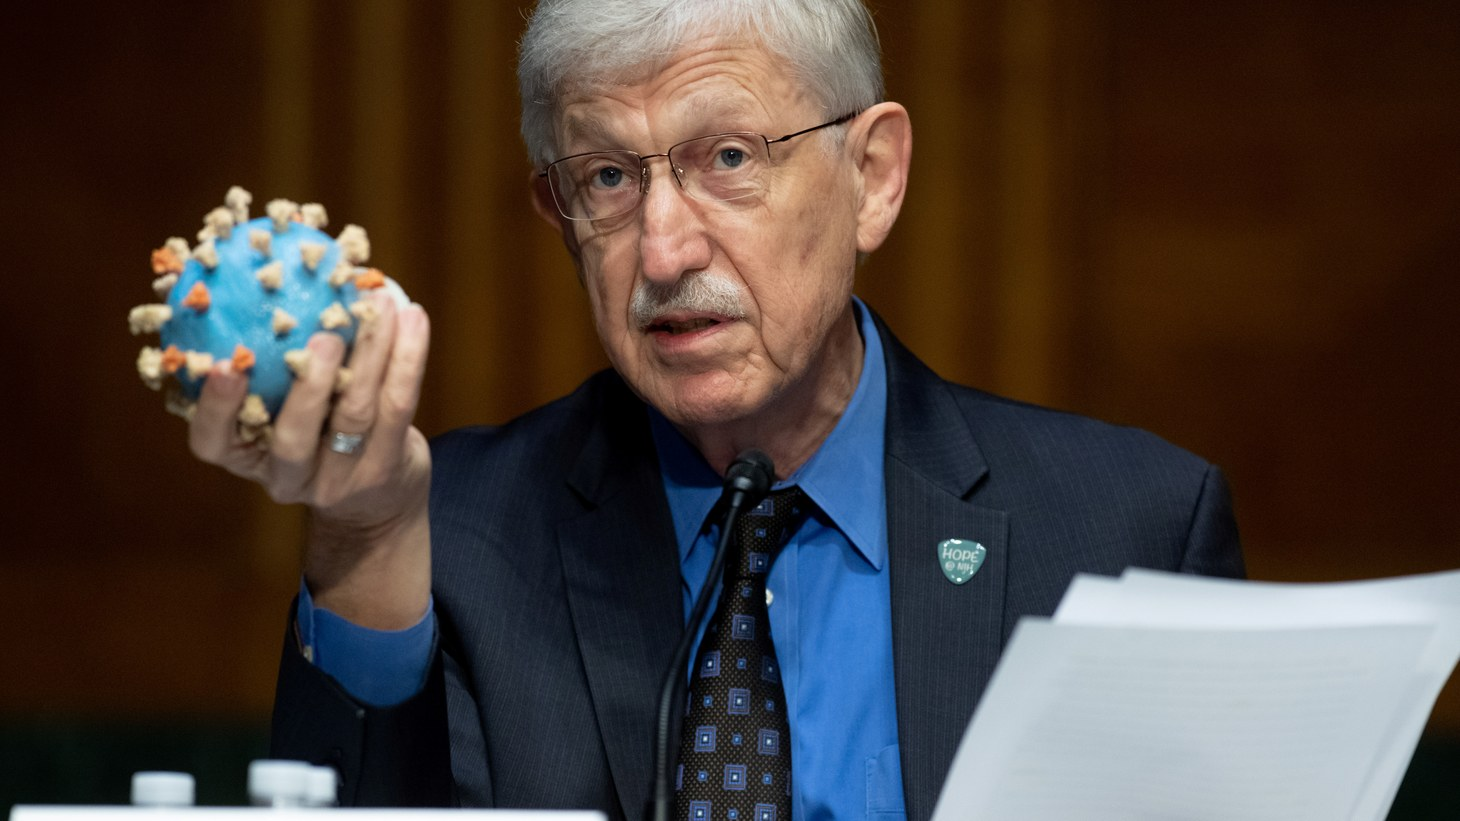 Dr. Francis Collins, Director of the National Institutes of Health (NIH), holds up a model of SARS-CoV-2, known as the novel coronavirus, during a U.S. Senate Appropriations Subcommittee Hearing on the plan to research, manufacture, and distribute a coronavirus vaccine. Washington, D.C, U.S., July 2, 2020.